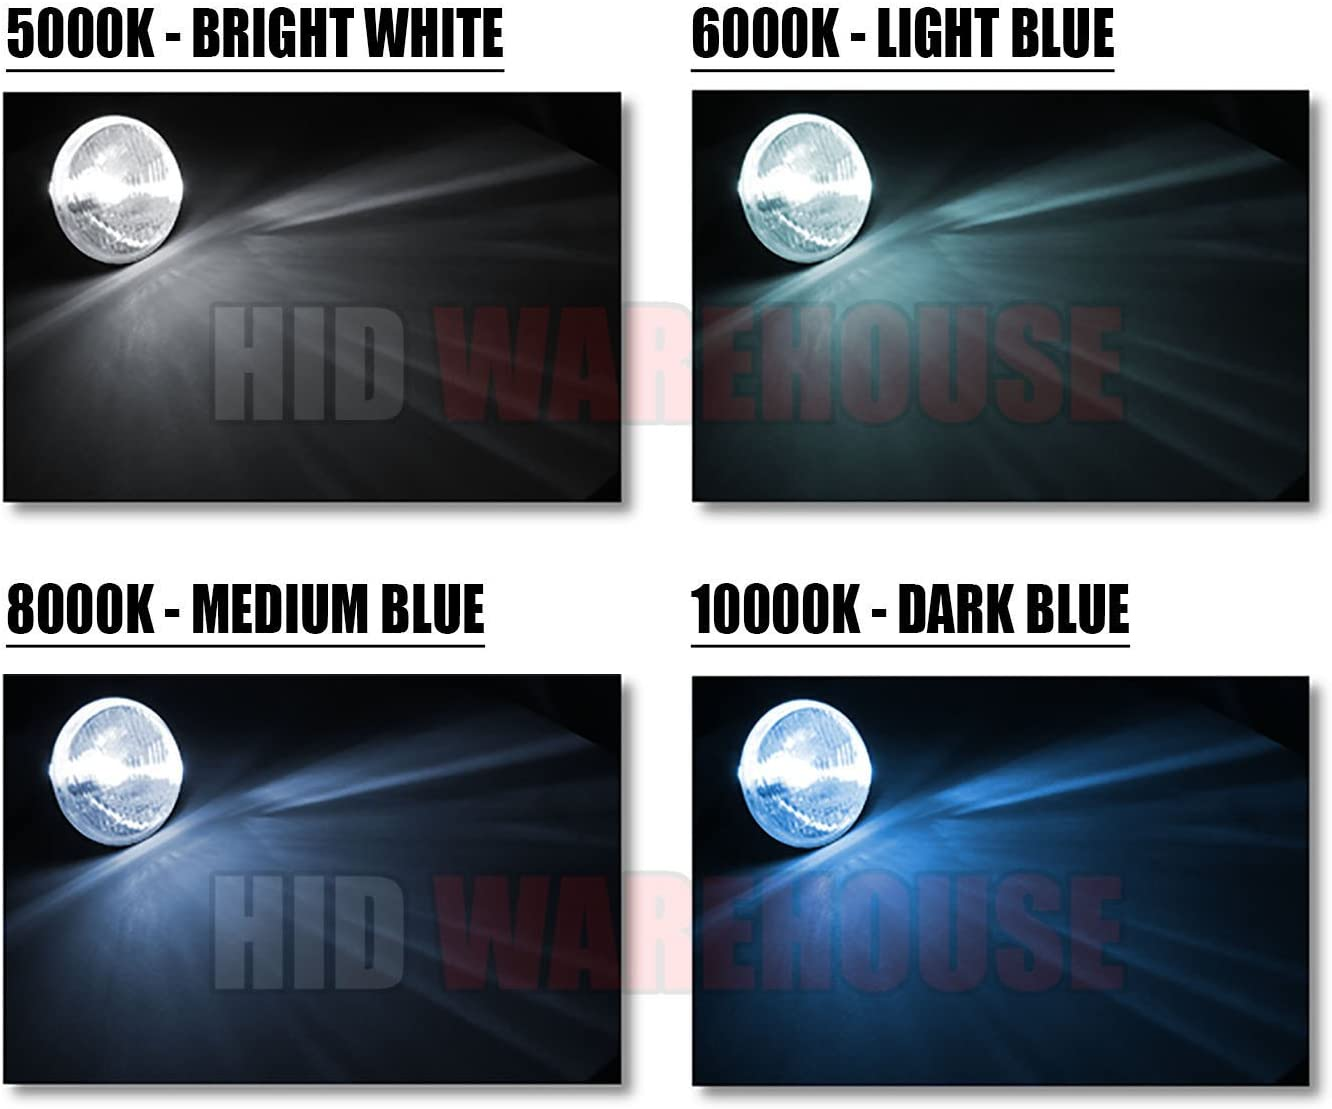 HID-Warehouse HID Xenon Replacement Bulbs - 2 Year Warranty Bright White H10 // 9140 5000K 1 Pair